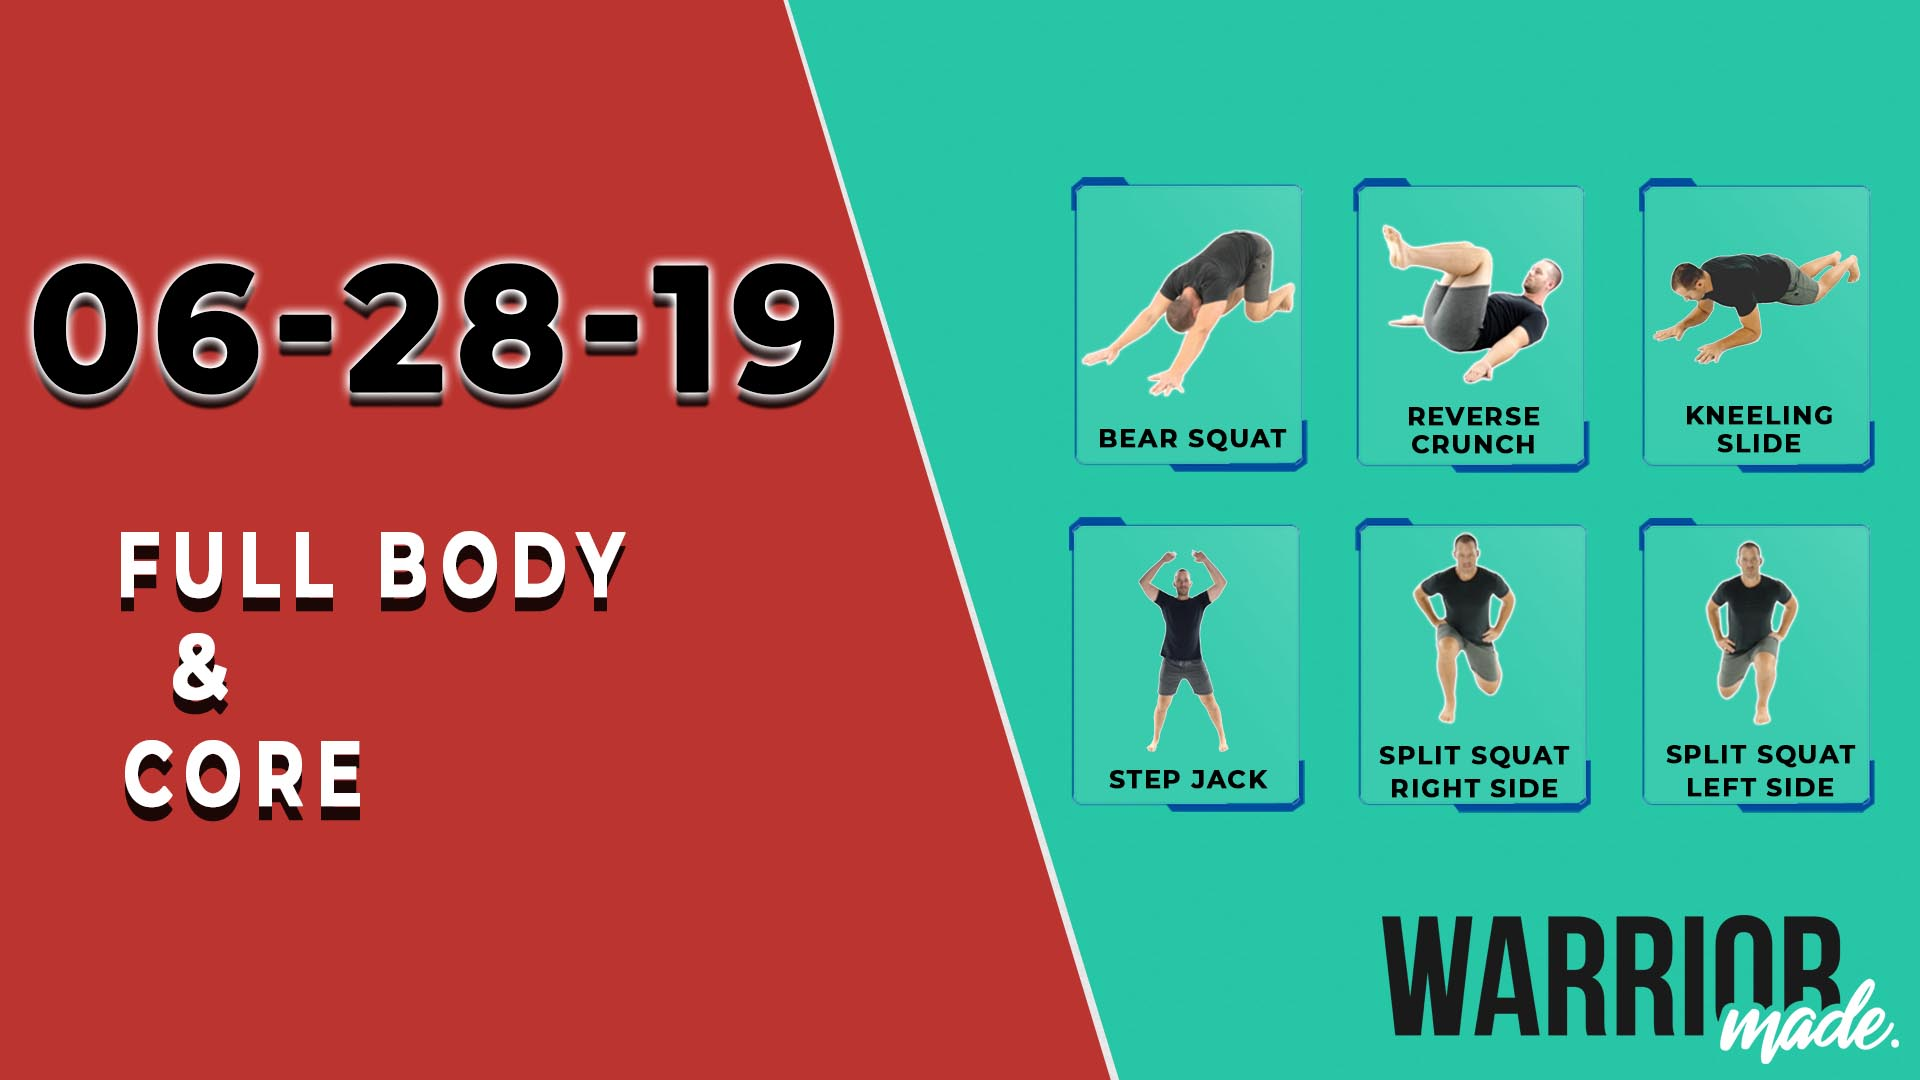 workouts-06-28-19